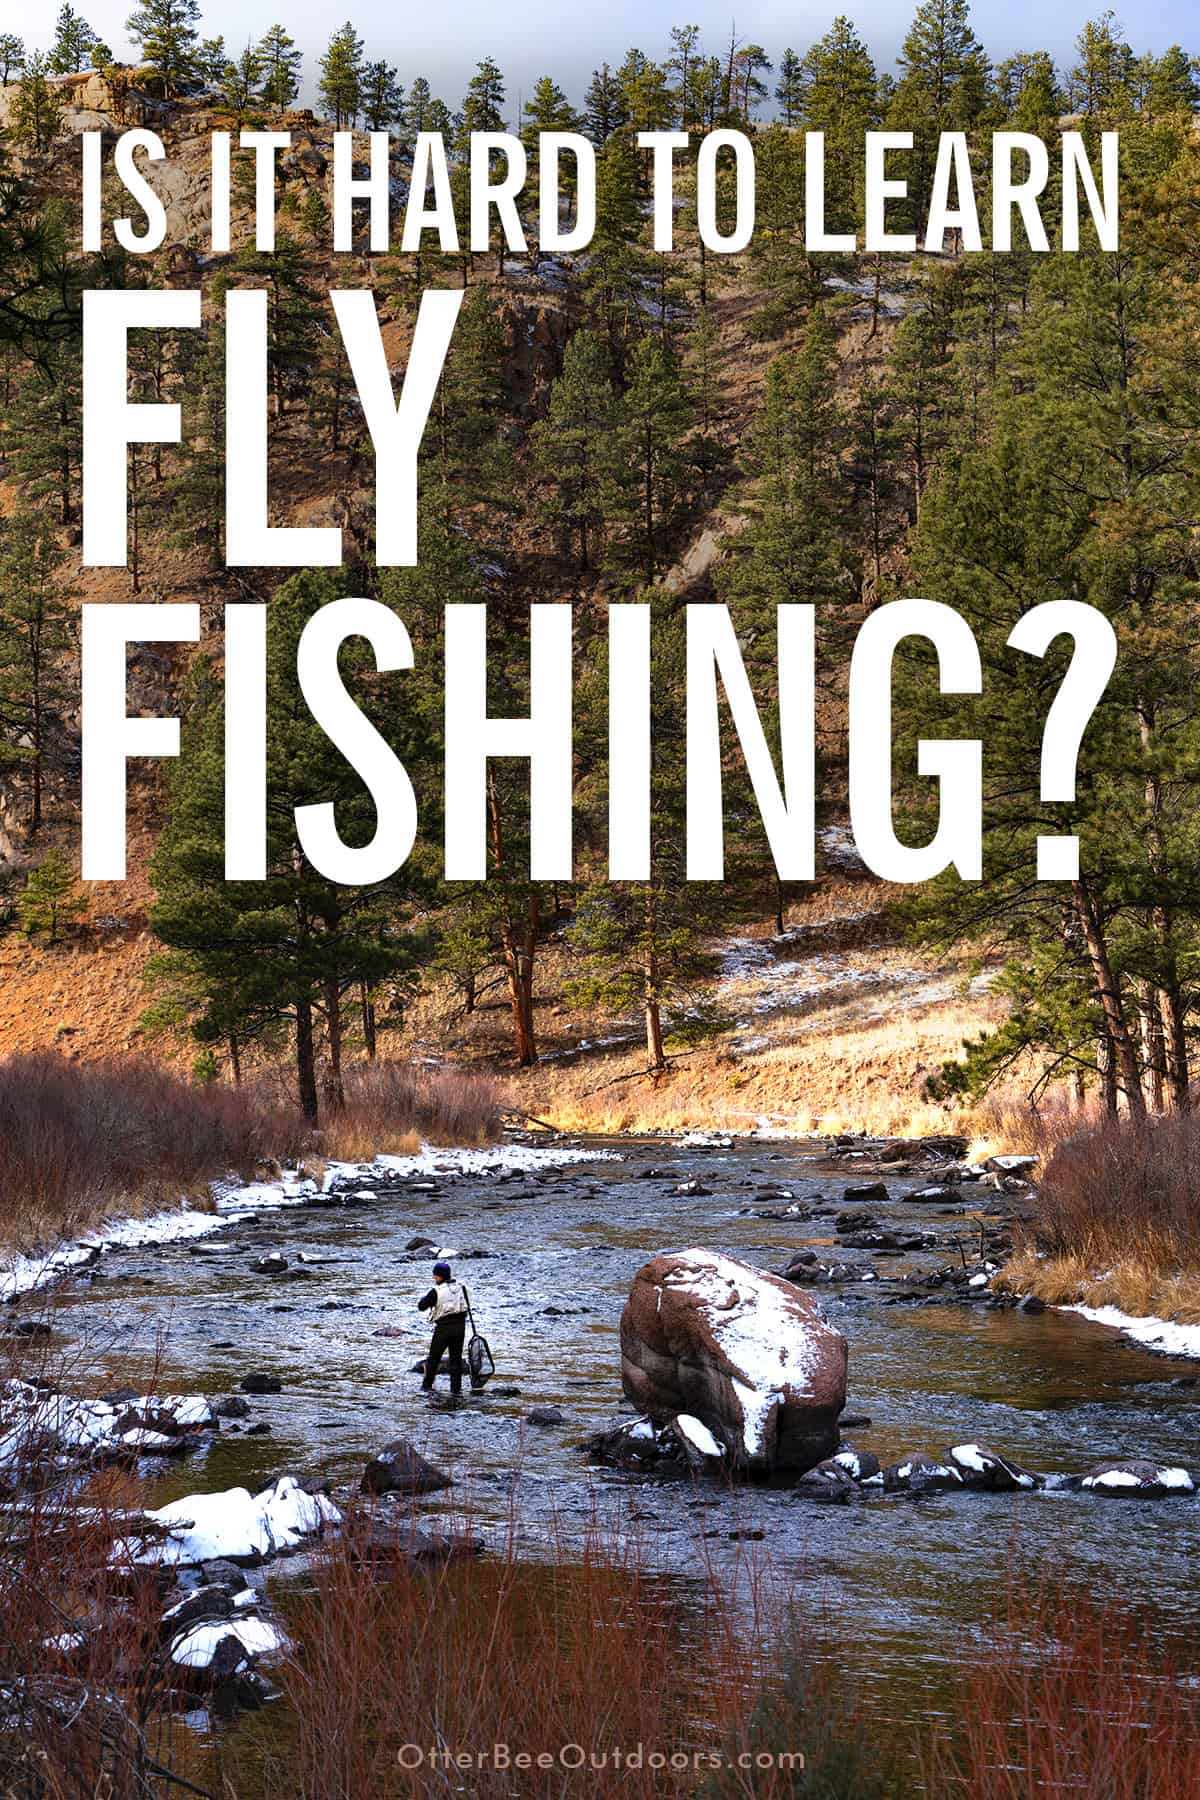 Fly fisherman in a cold mountain stream with patches of snow on the ground.